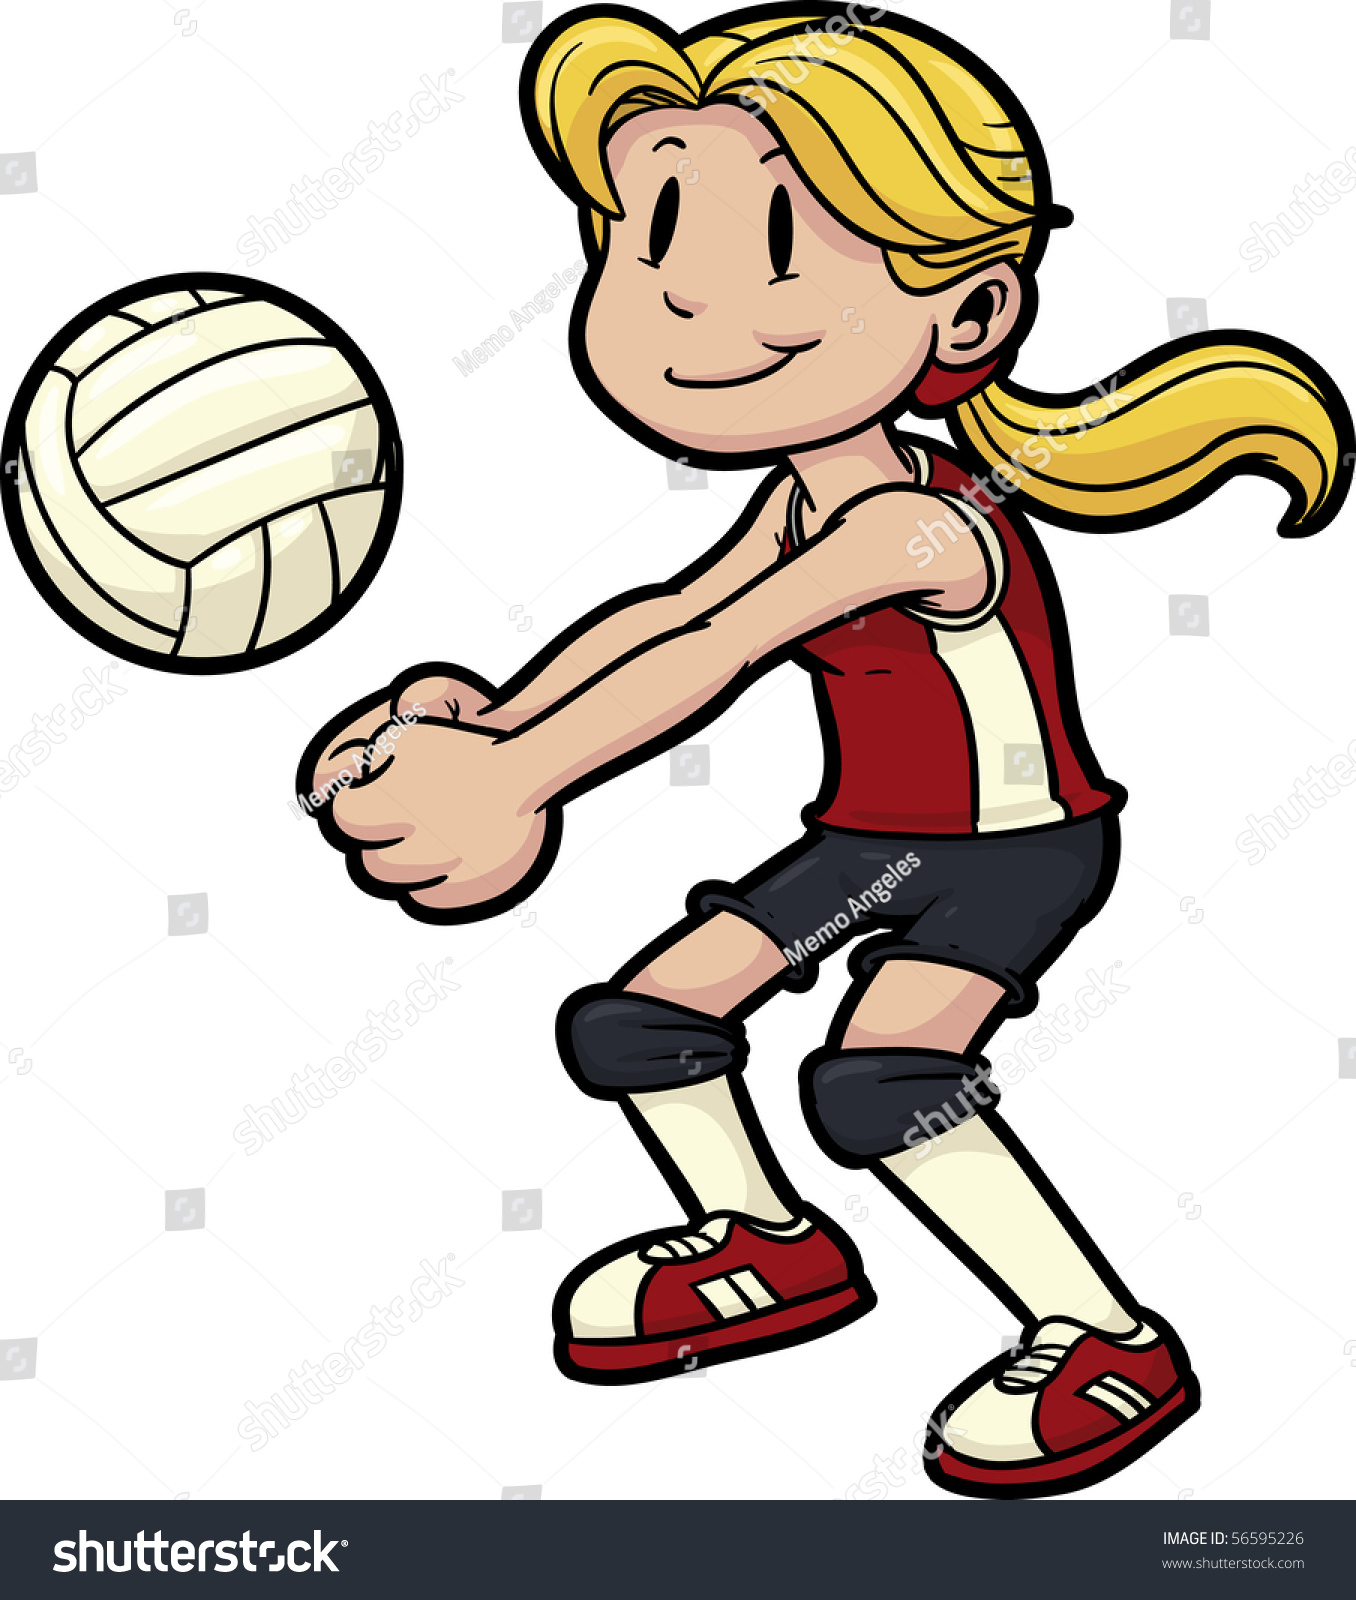 Clipart volleyball cartoon, Clipart volleyball cartoon.